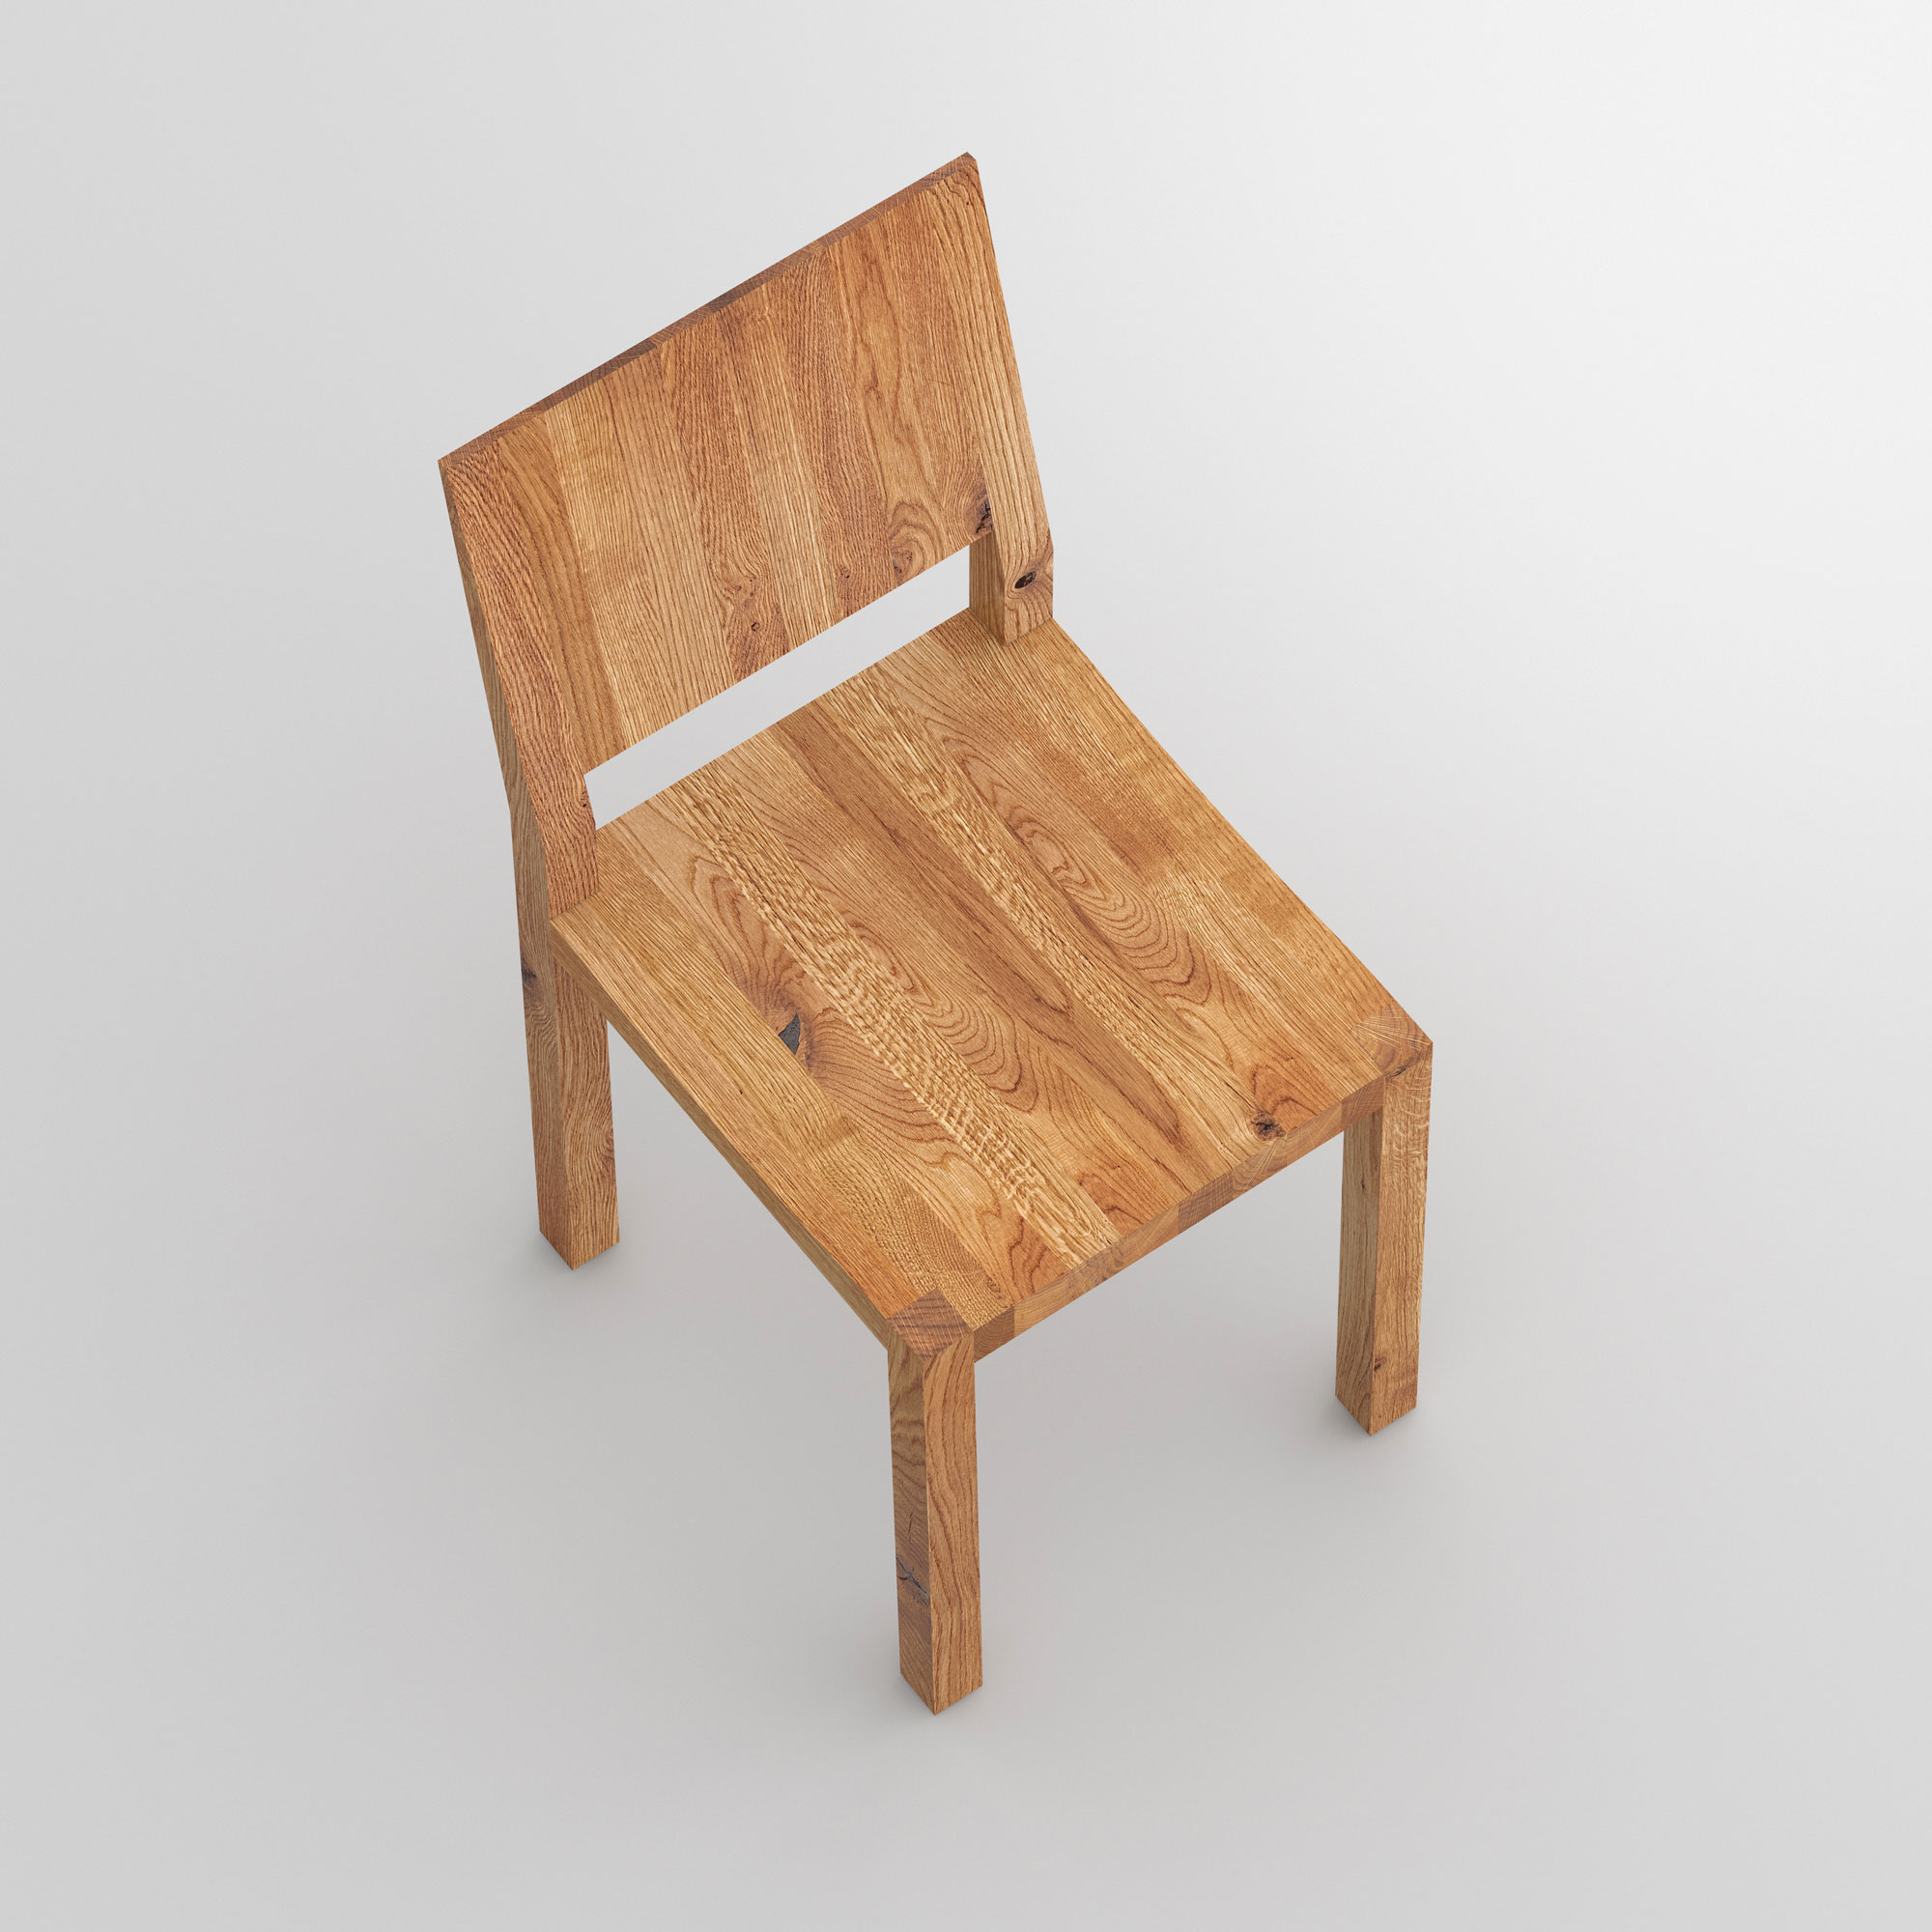 Solid Wood Chair TAU cam2 custom made in solid wood by vitamin design